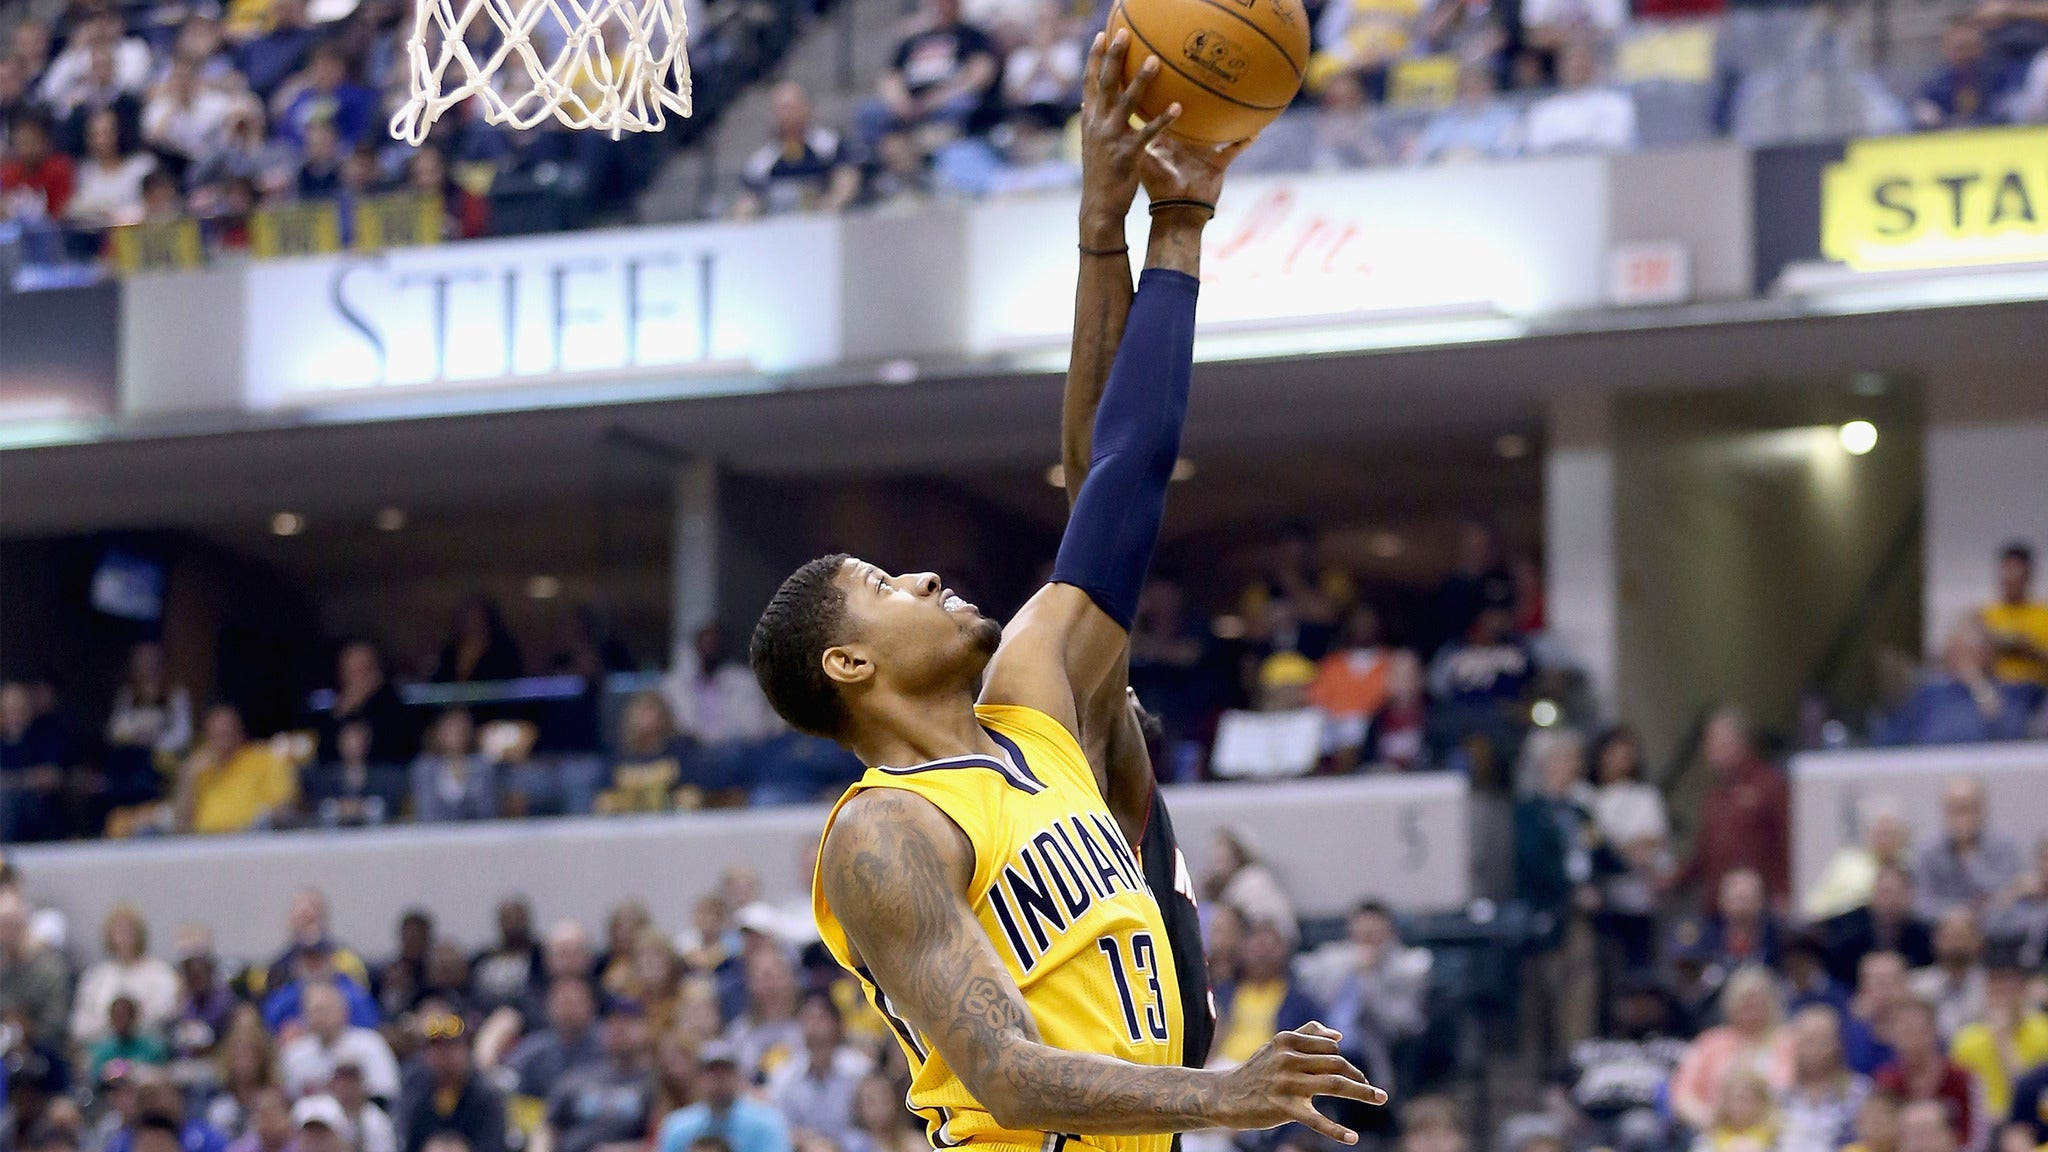 Indiana Pacers vs. Philadelphia 76ers - Indianapolis, IN 46204